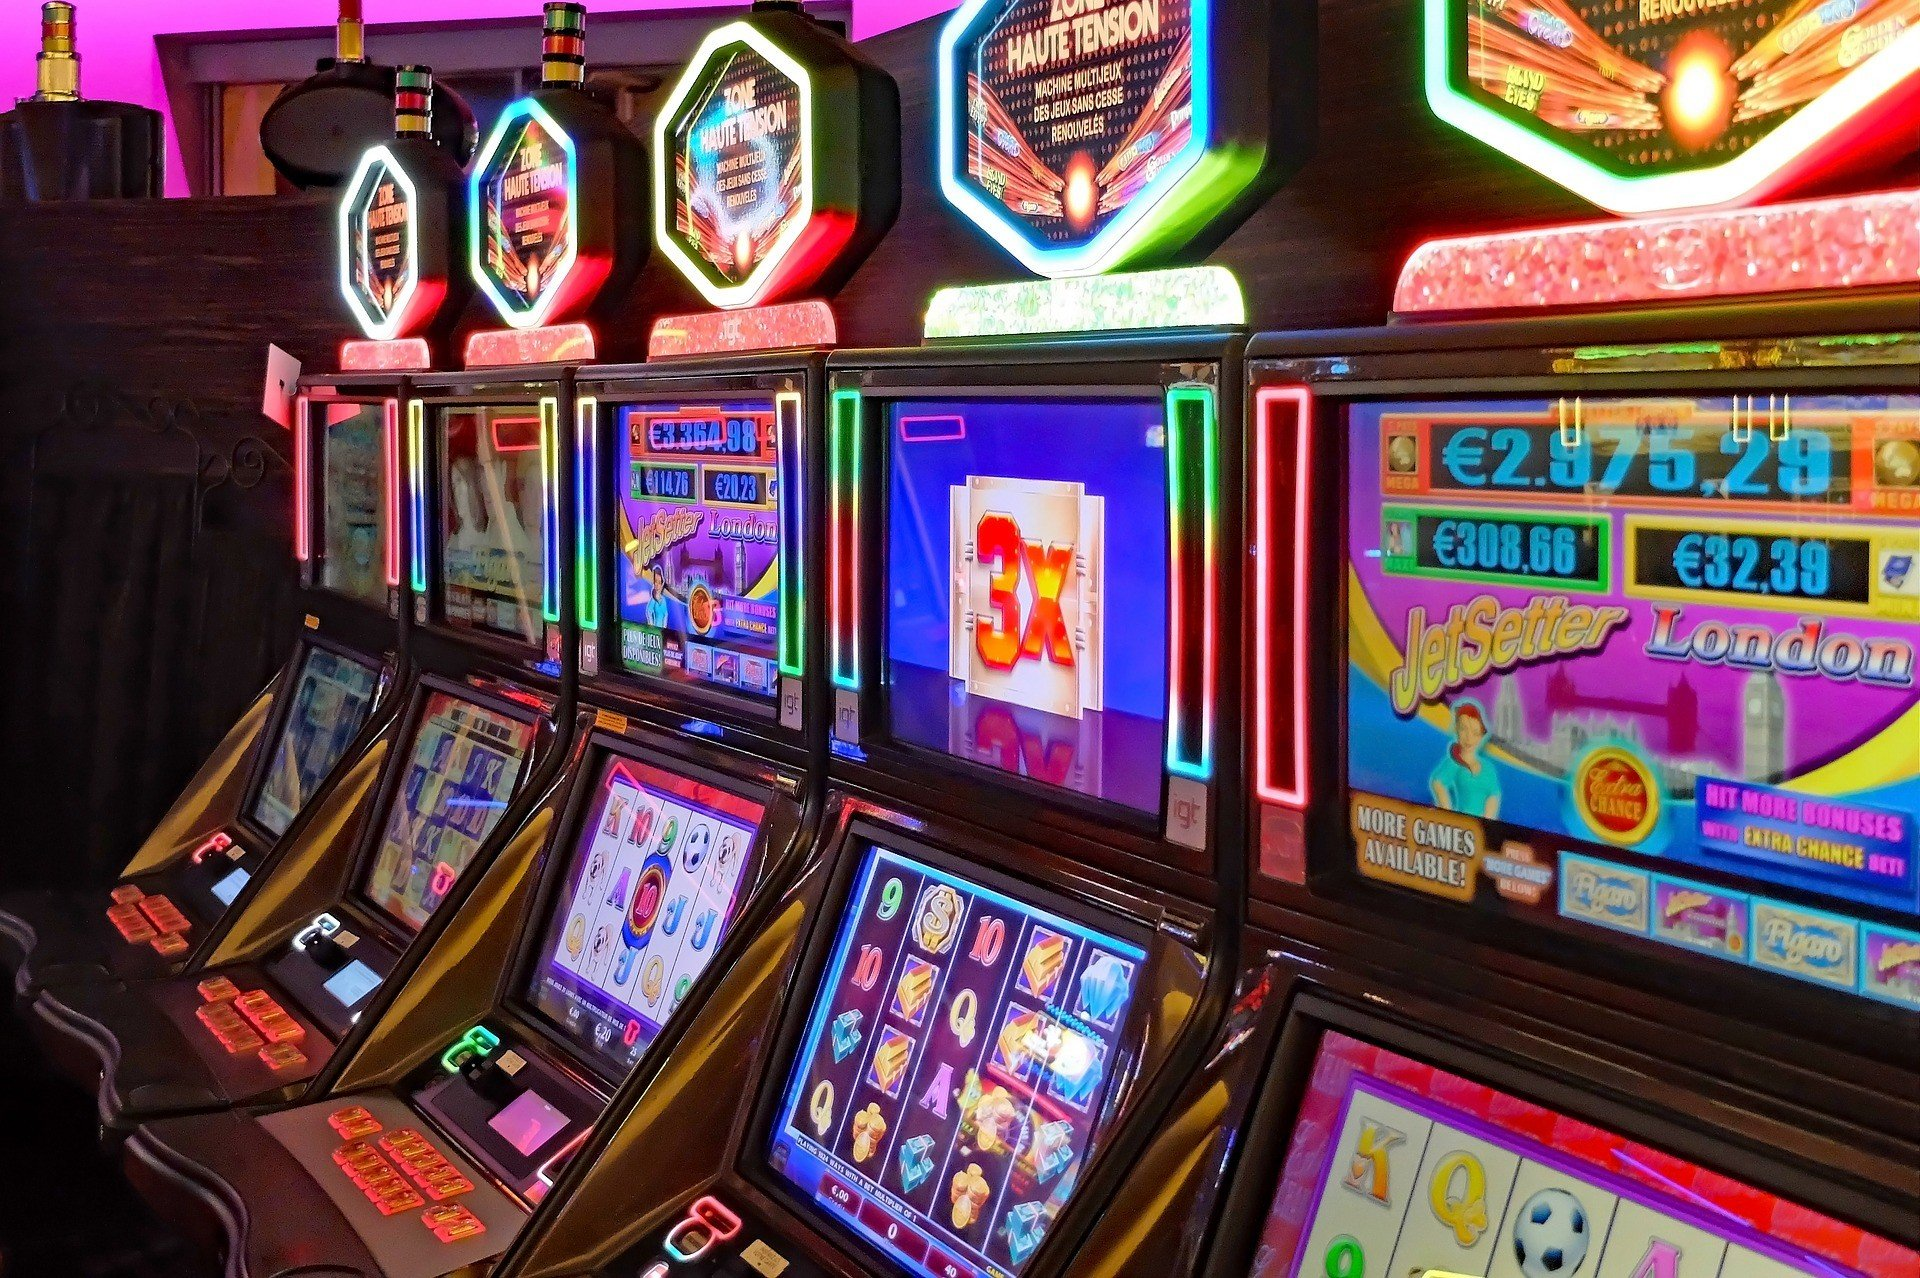 How to Find Slot Machines That Are Most Likely to Hit - Casino.org Blog